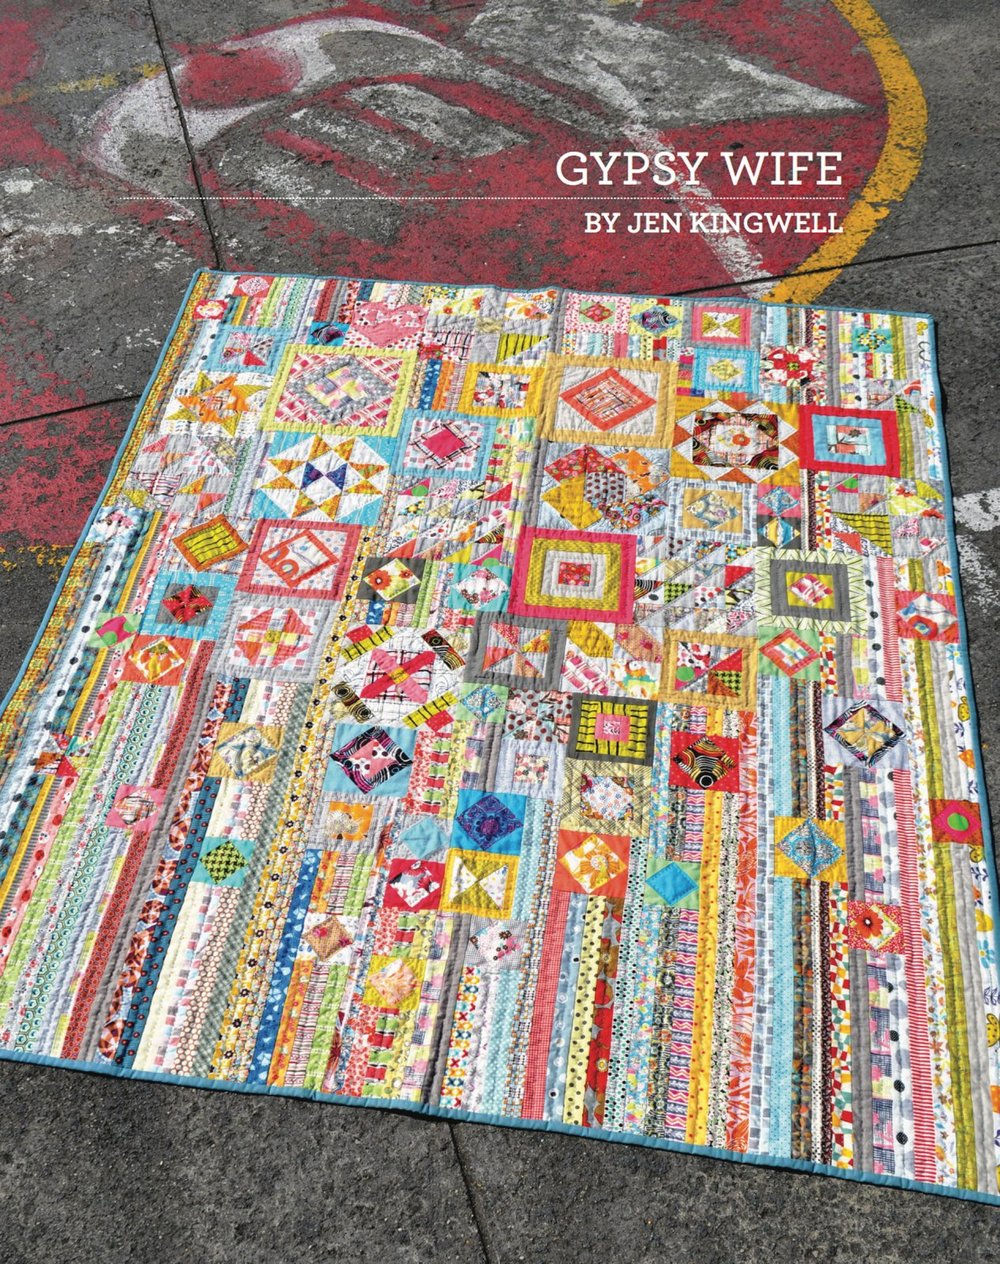 gypsy_wife_booklet_front_cover.jpg